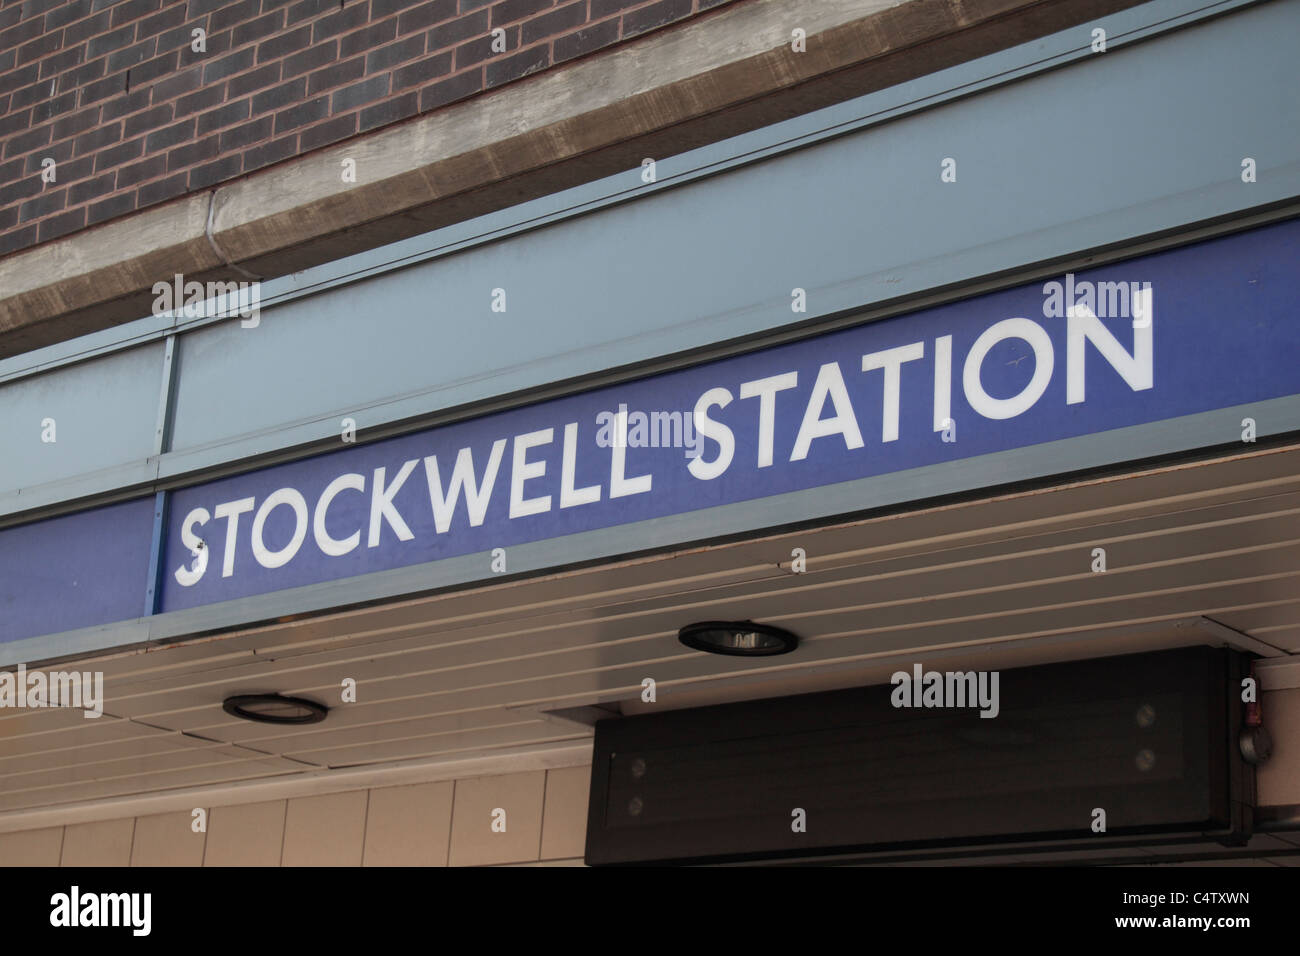 Stockwell tube station, site of the July 2005 Police shooting of Charles de Menezes  in south London, UK. - Stock Image